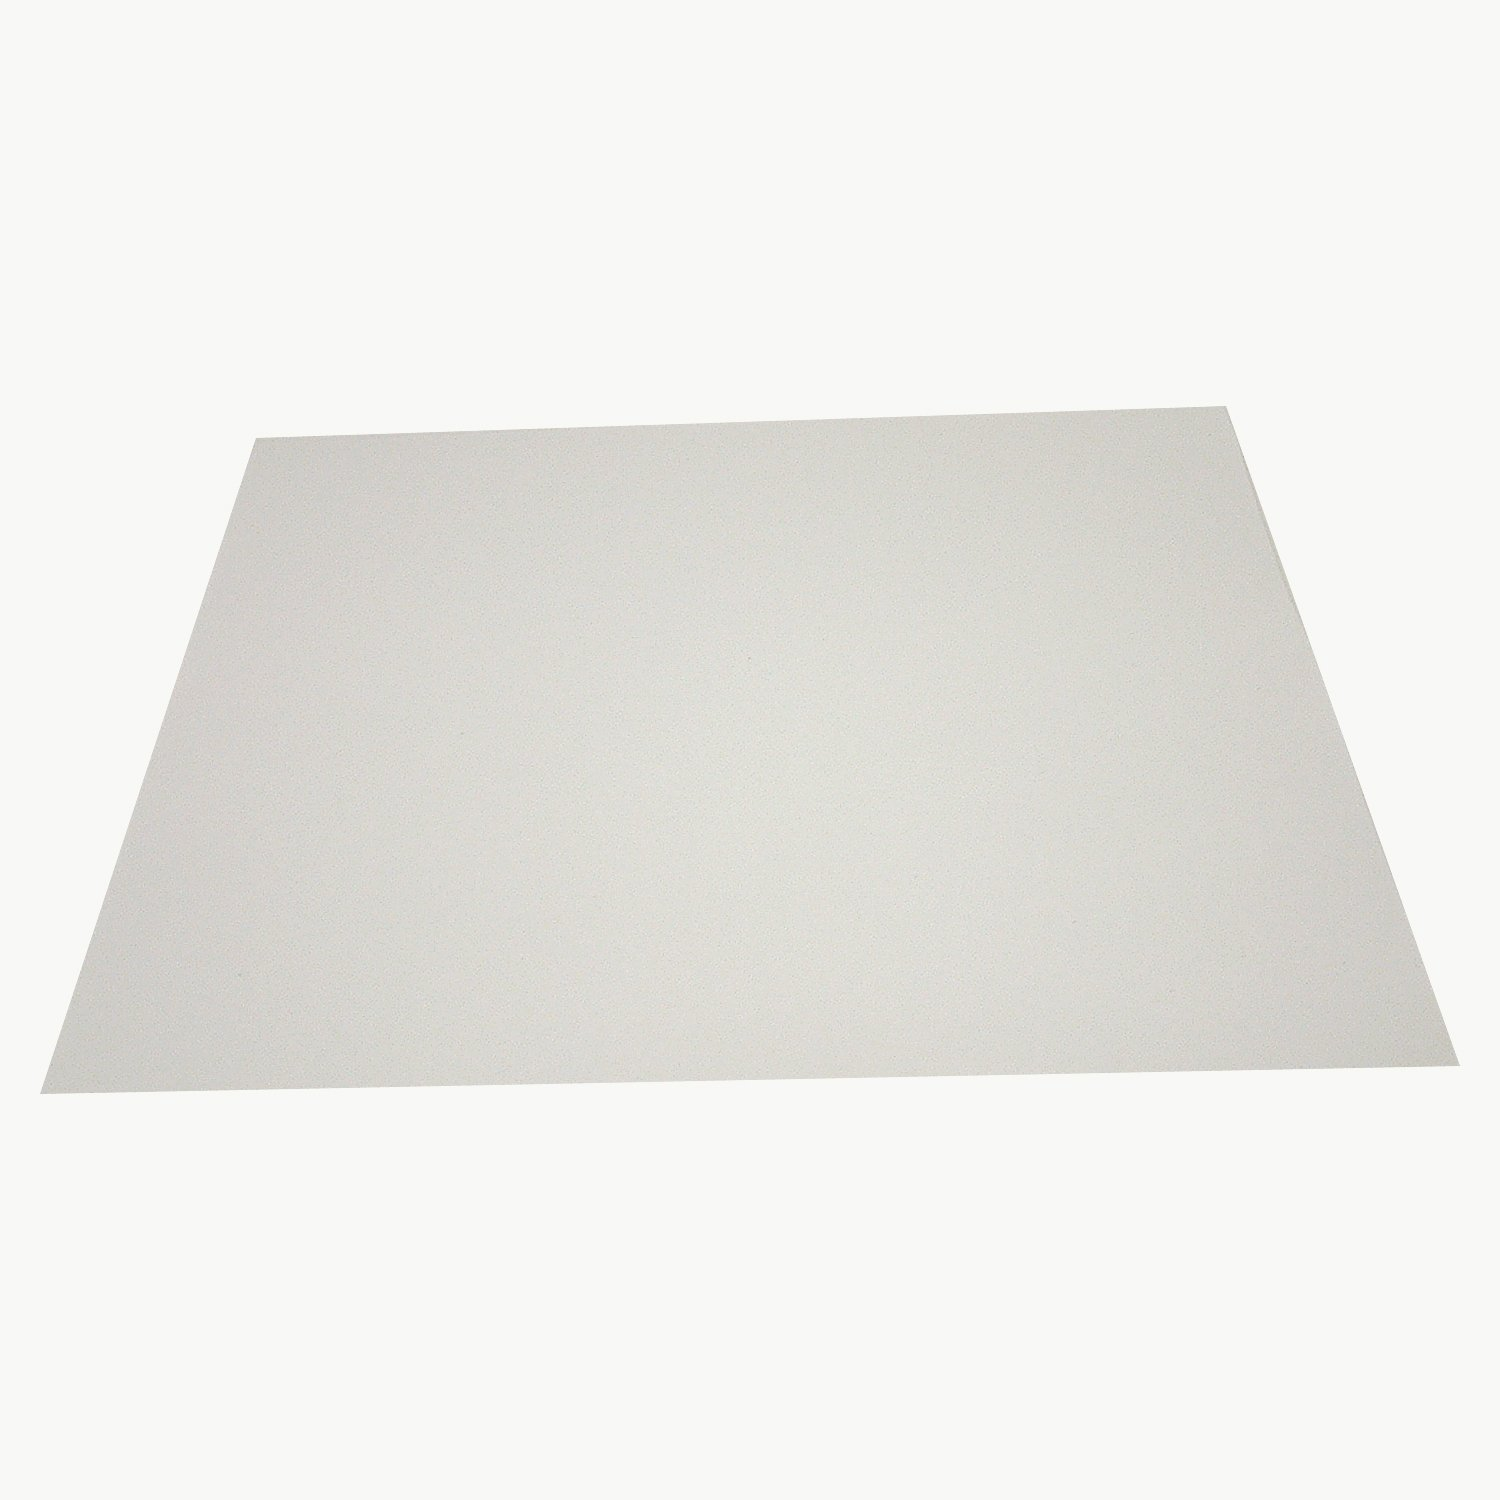 JVCC SCP-04 Silicone-Coated Paper Separator Sheets: 13-1/2 in. x 6 in. (Off-White) [20 Sheets/Pack]